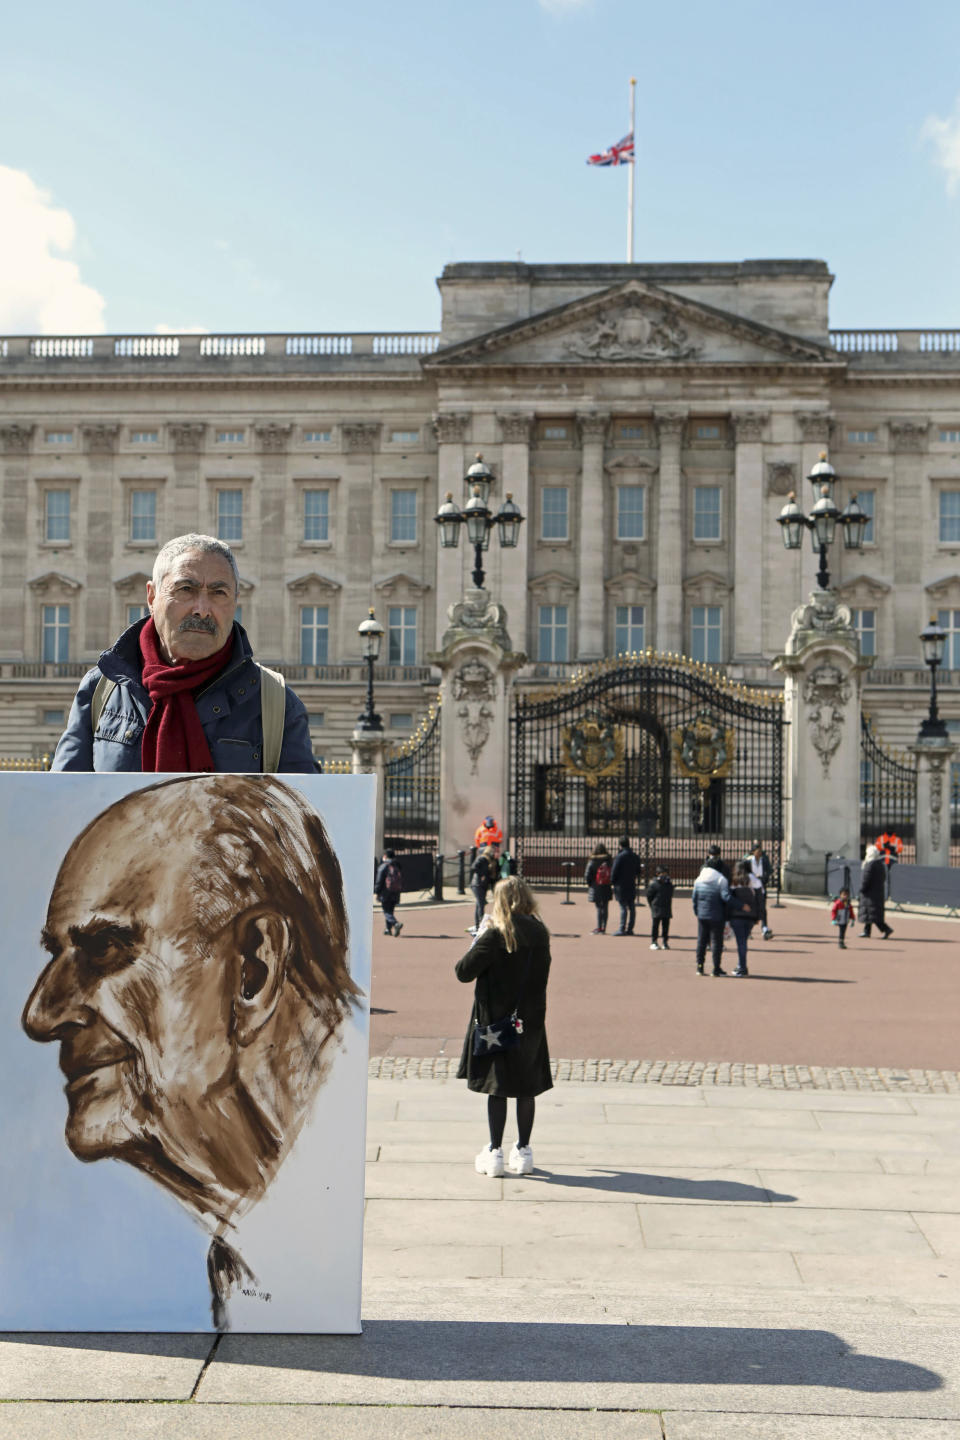 Artist Kaya Mar holds a portrait he has painted of the Duke of Edinburgh outside Buckingham Palace, London, Monday, April 12, 2021. Britain's Prince Philip, the irascible and tough-minded husband of Queen Elizabeth II who spent more than seven decades supporting his wife in a role that mostly defined his life, died on Friday. (Luciana Guerra/PA via AP)